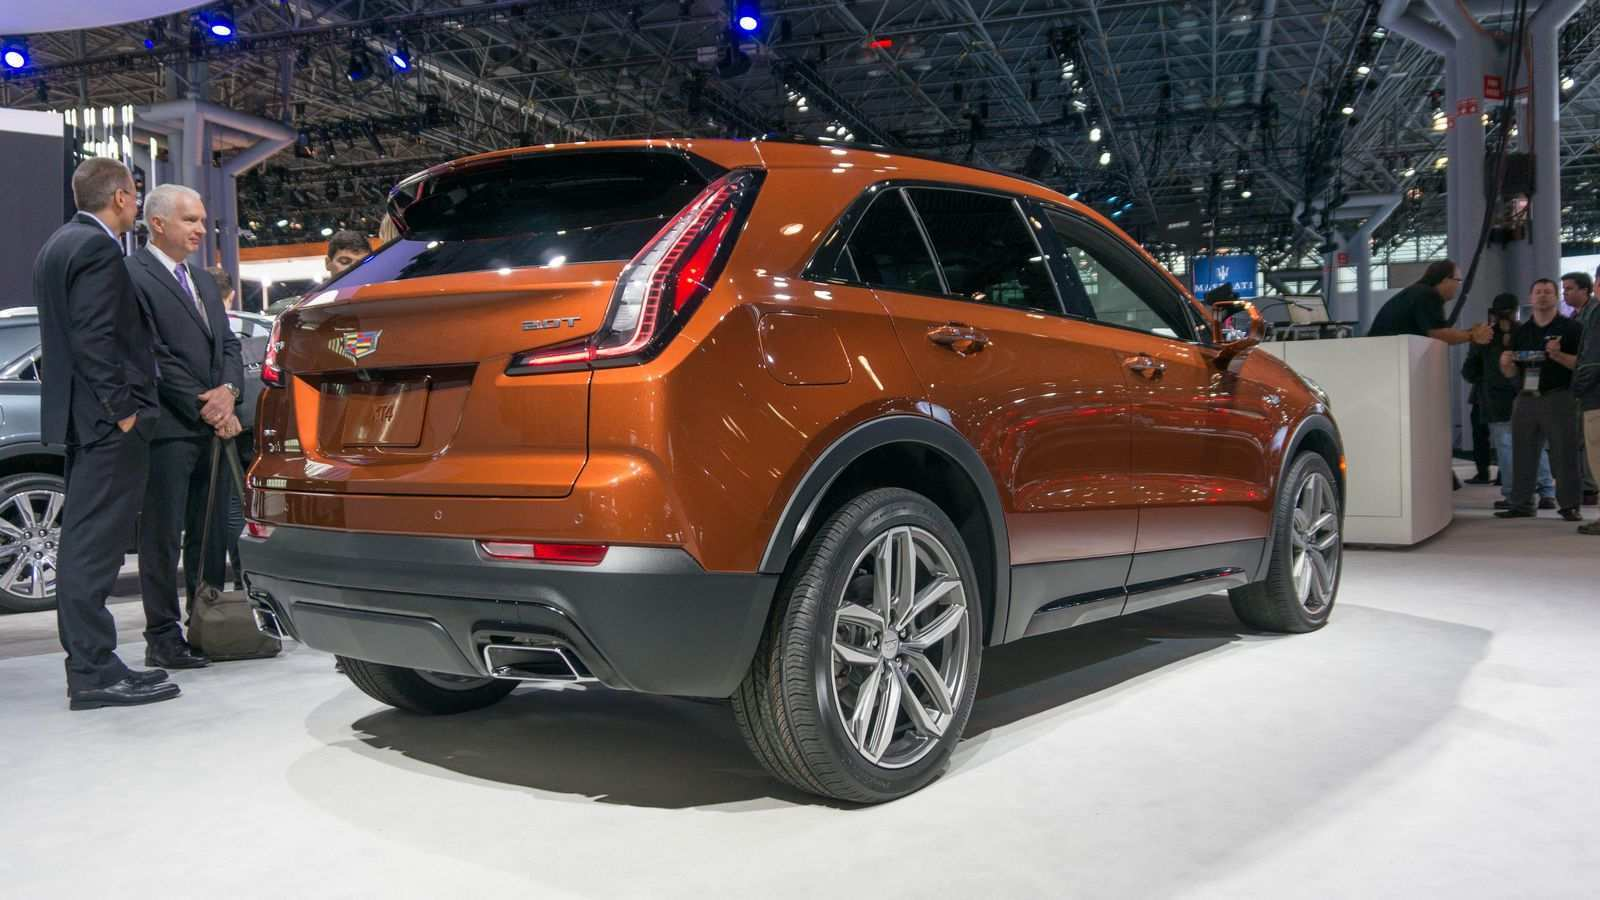 49 Best Review Cadillac 2019 Xt4 Price New Engine New Concept for Cadillac 2019 Xt4 Price New Engine